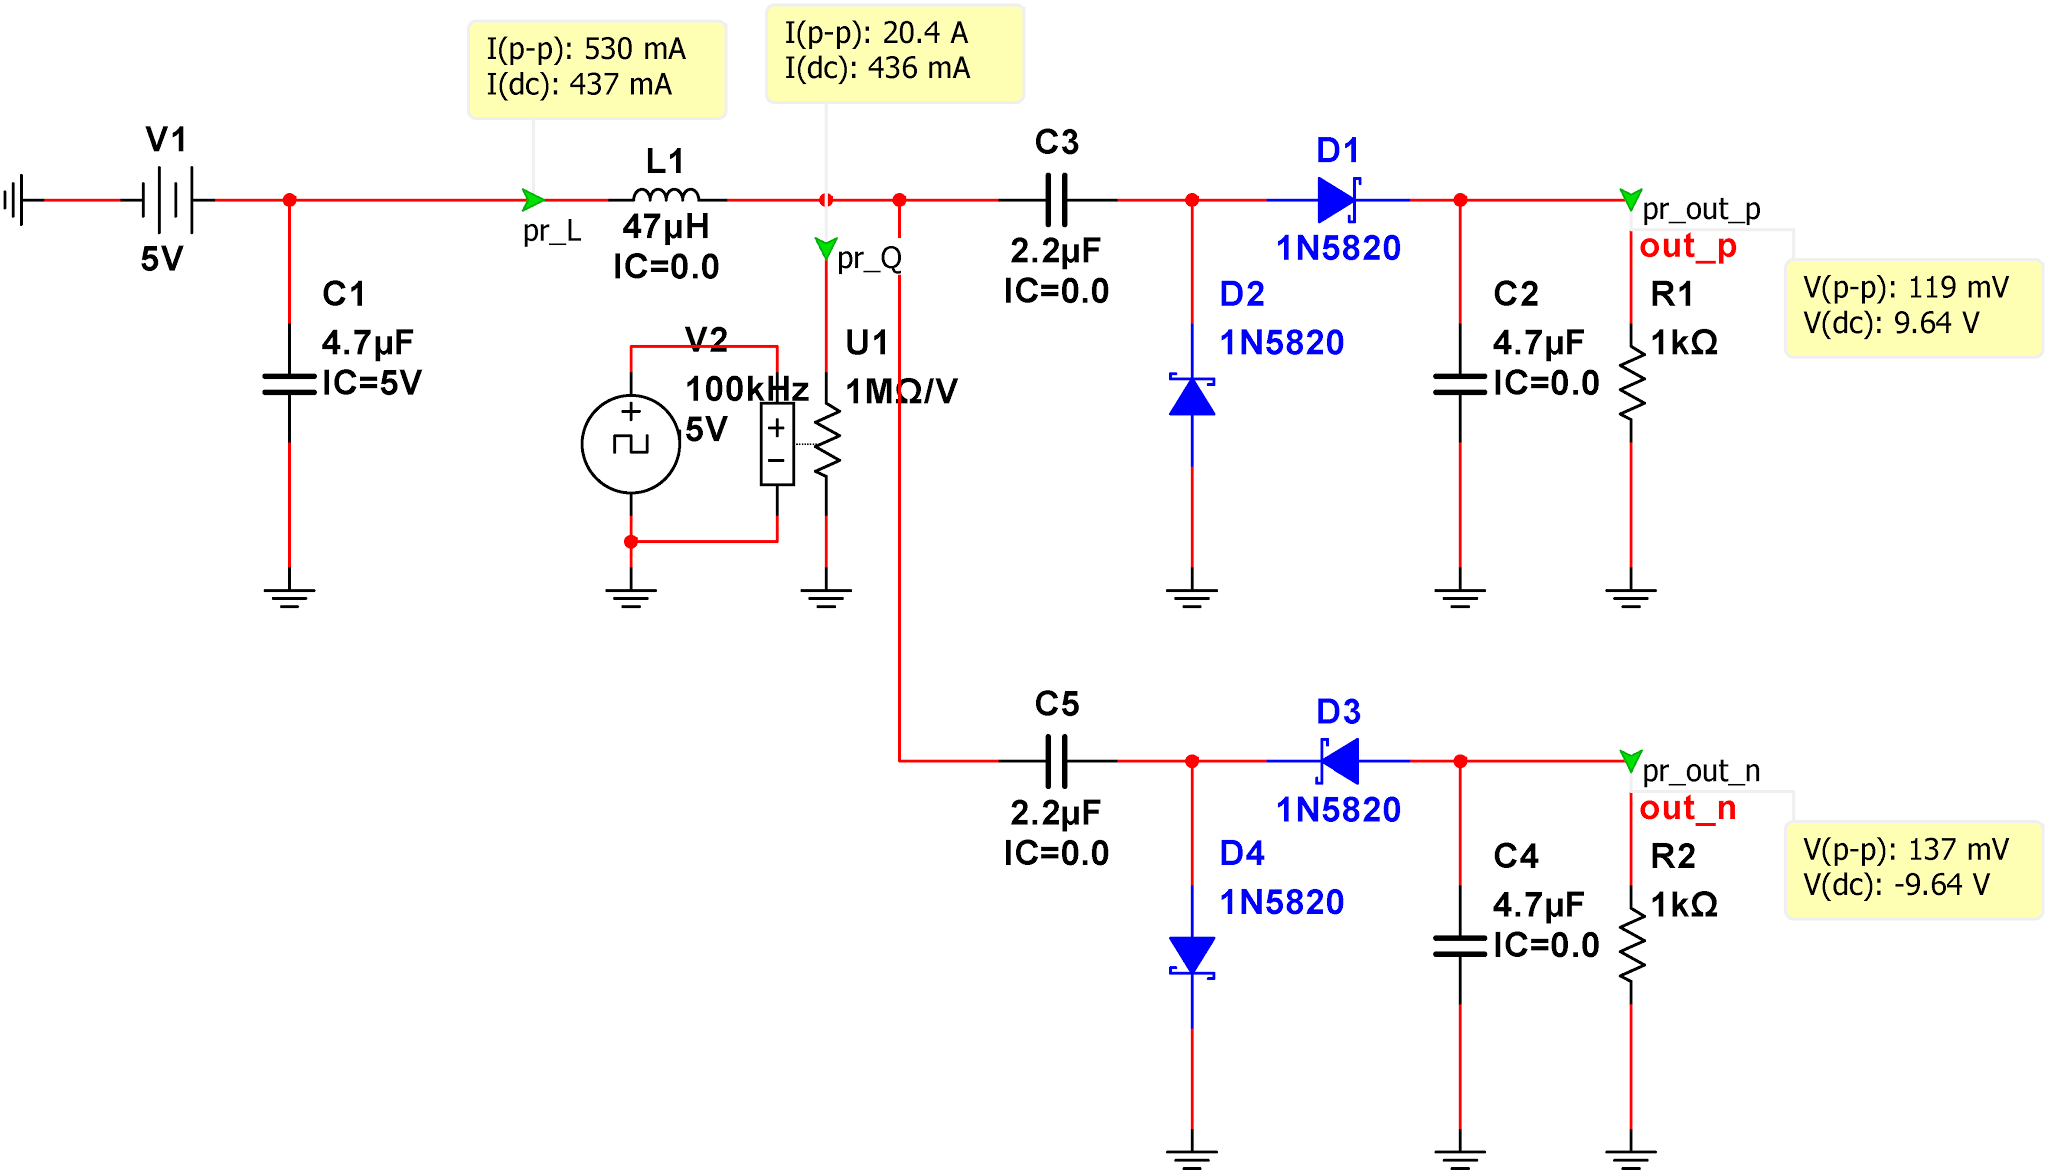 Uncategorized Frog In The Well High Current 5 Volt Regulator Electrical Engineering Stack Exchange Back Then I Didnt Fully Understand What It Was So Asked About This On Electronics Stackexchange But Of Course Is Not A Hack That Happens To Work